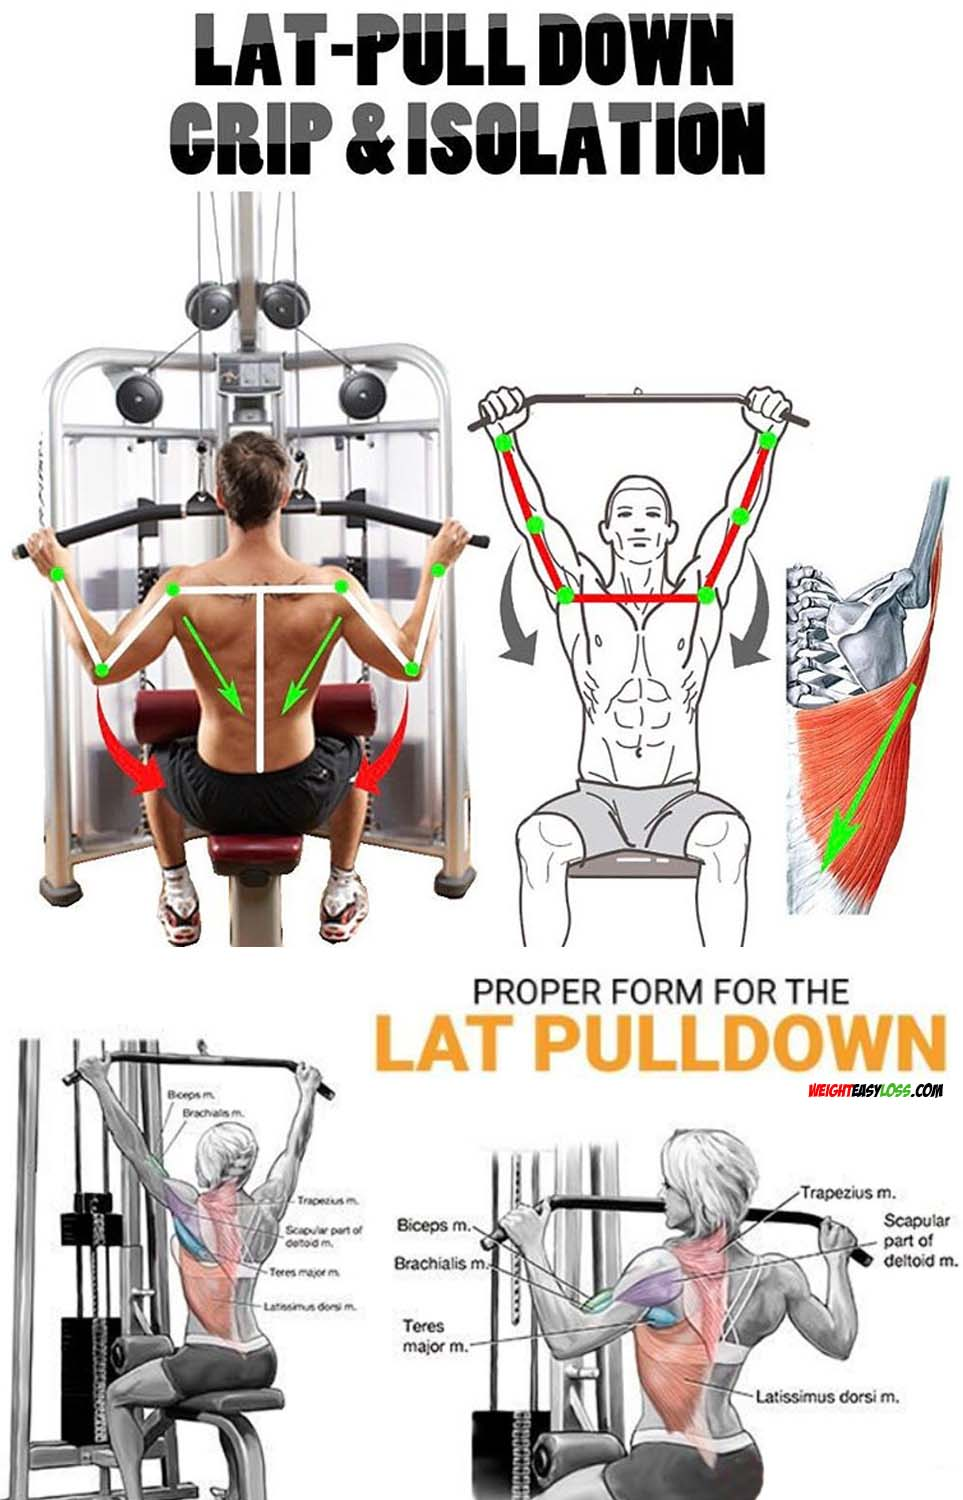 Lat-PullDown Grip & ISOLATION